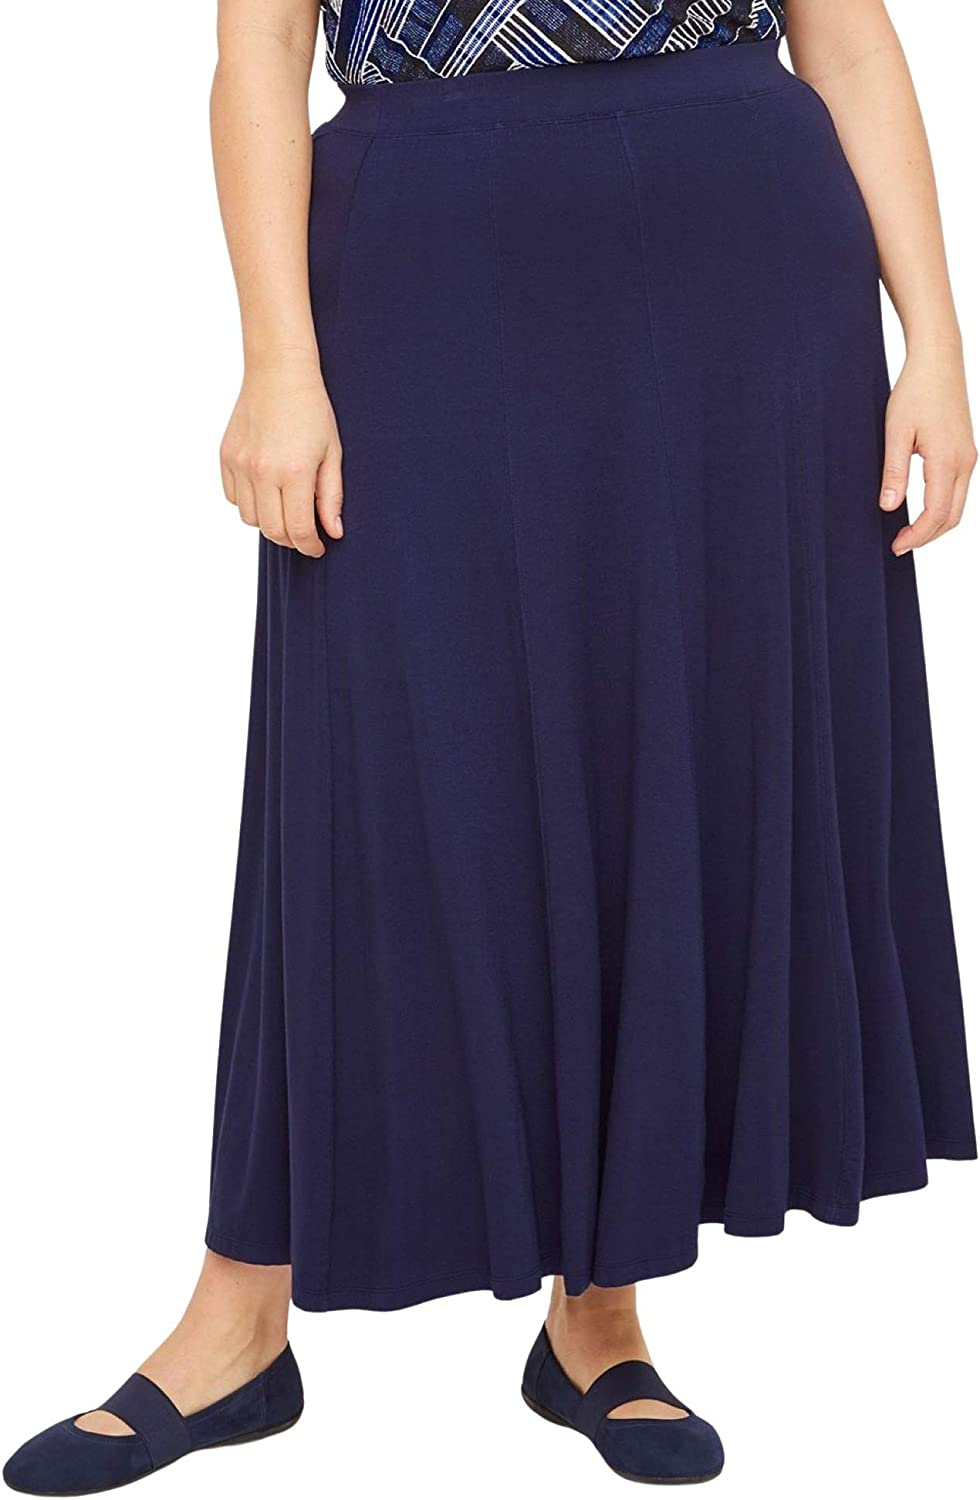 Catherines Women's Plus Size Anywear Seamed Skirt